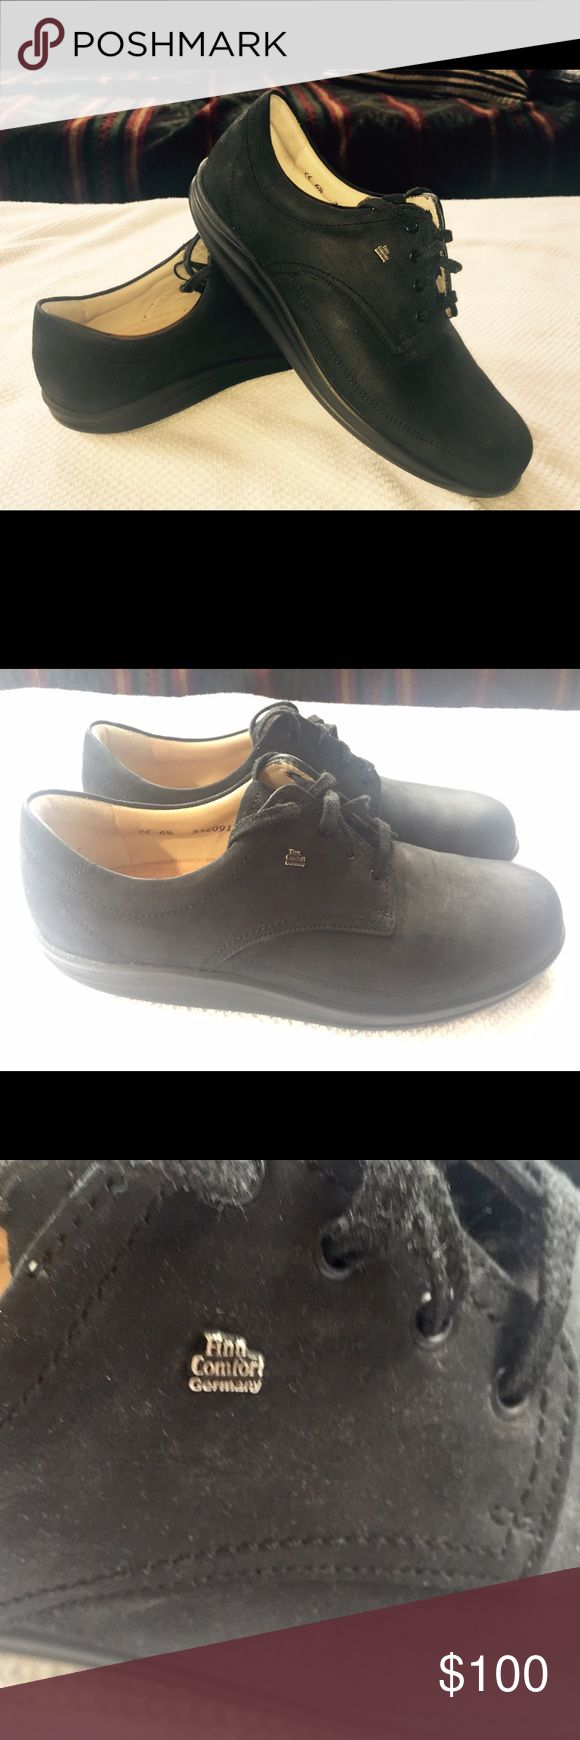 Finn Comfort nubuck shoes 6.5 Ergonomic oxford in nubuck. Used in excellent condition. finn comfort Shoes Oxfords & Derbys